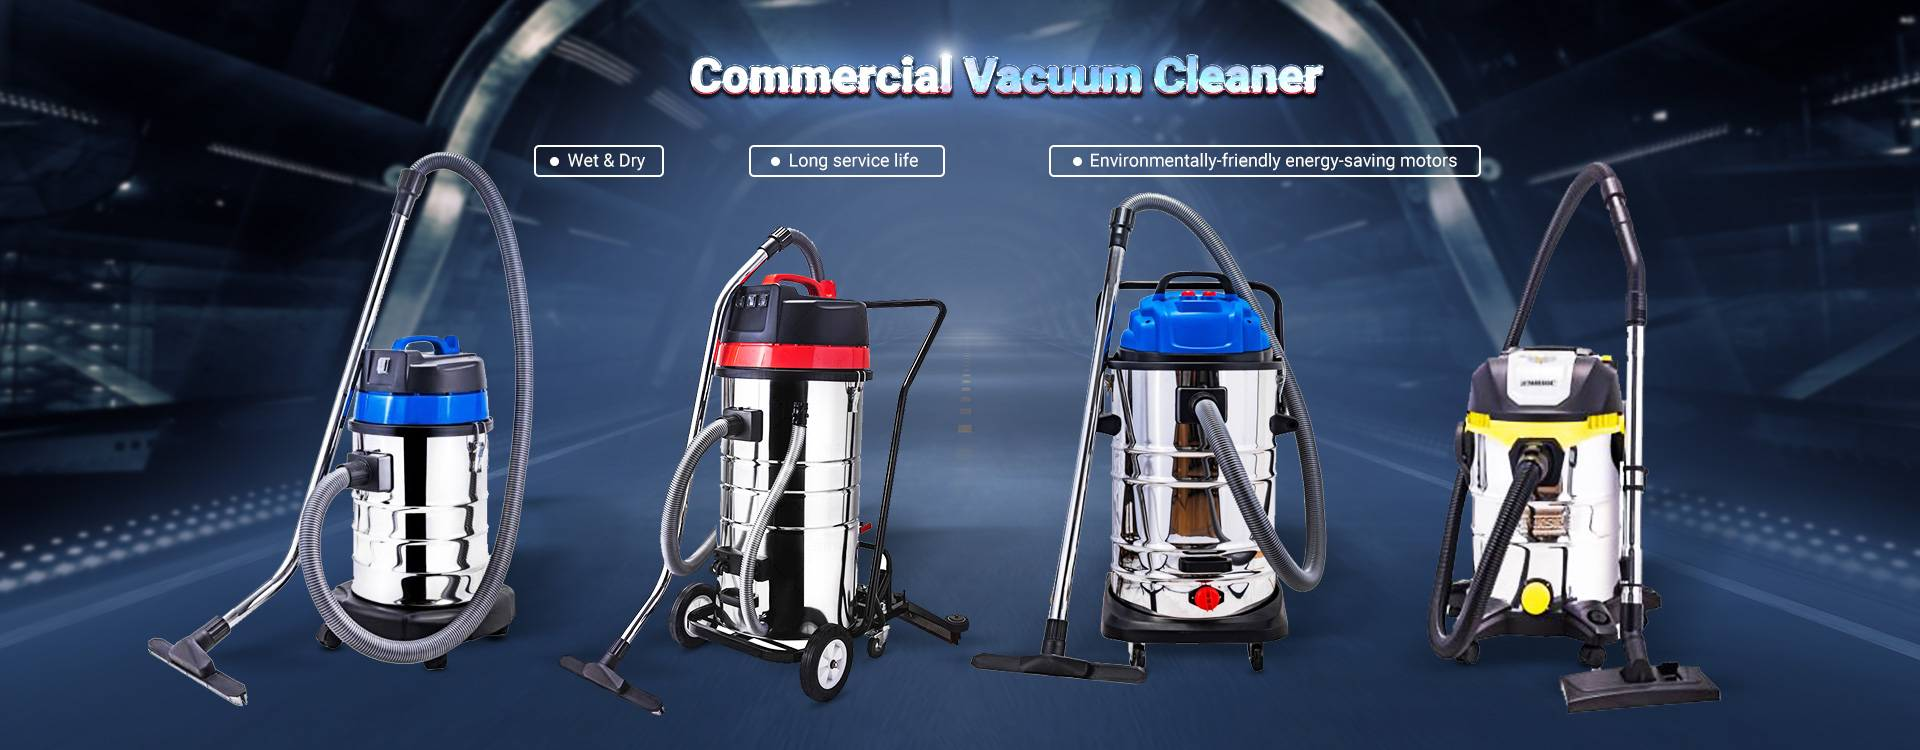 Carpet and floor vacuum